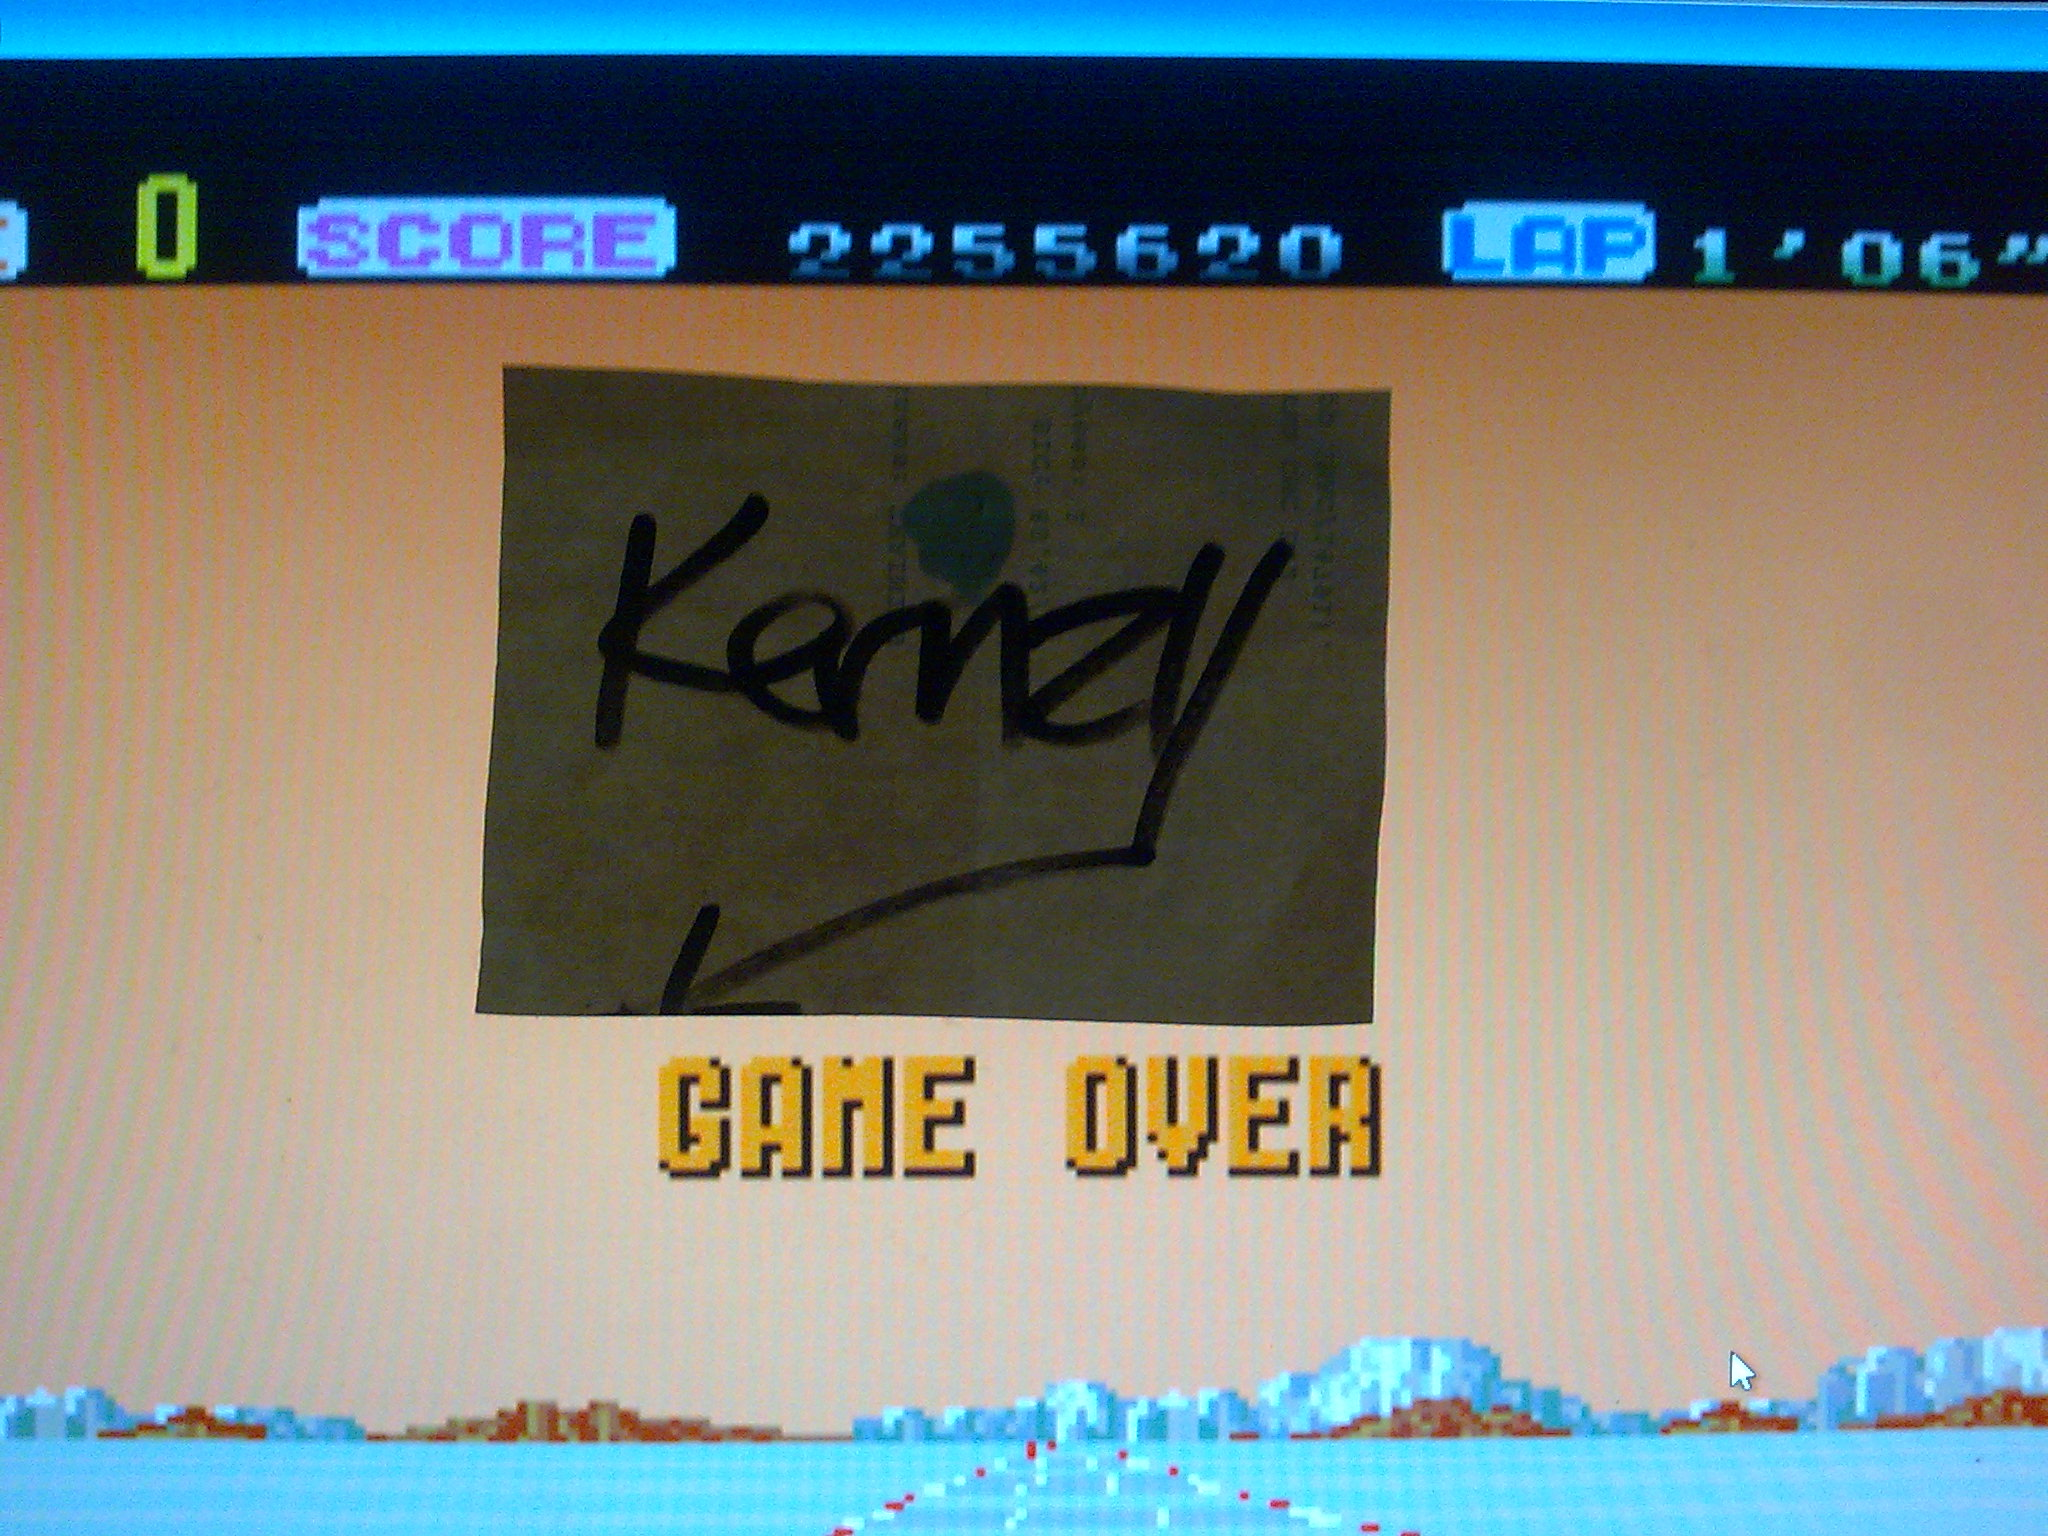 kernzy: Out Run: Hard (TurboGrafx-16/PC Engine Emulated) 2,255,620 points on 2014-10-11 03:12:47